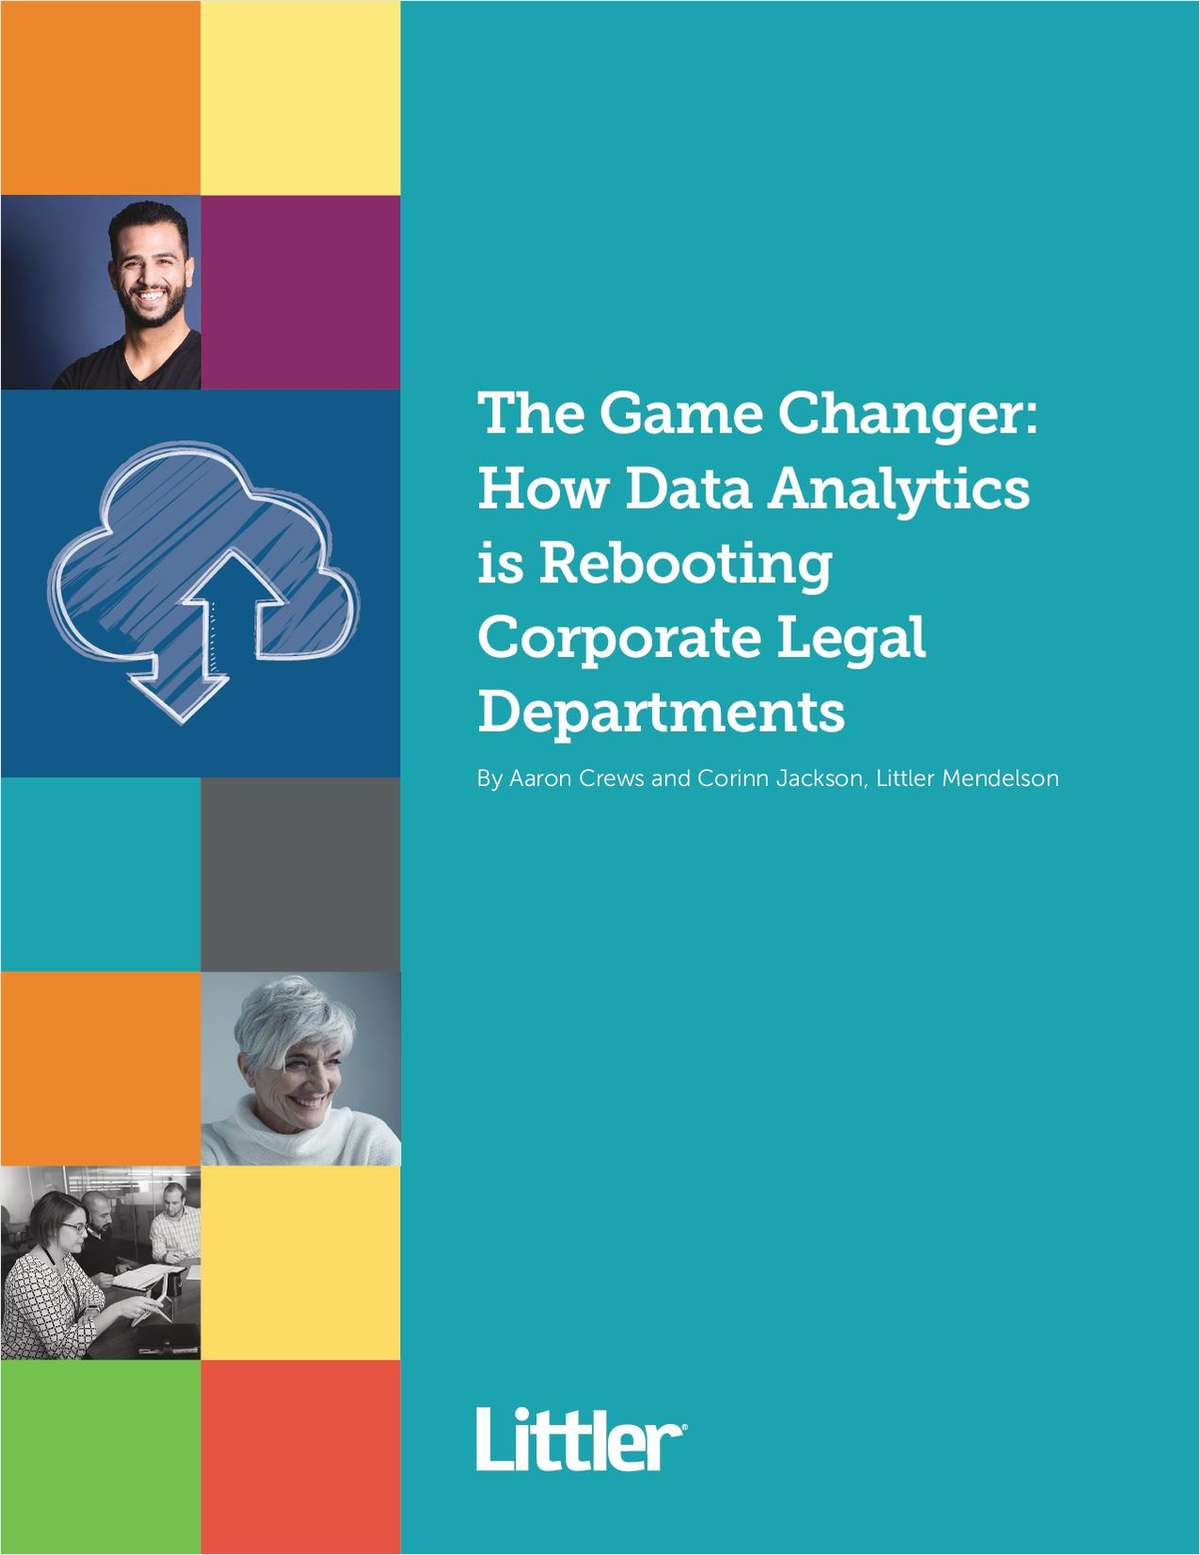 The Game Changer: How Data Analytics is Rebooting Corporate Legal Departments